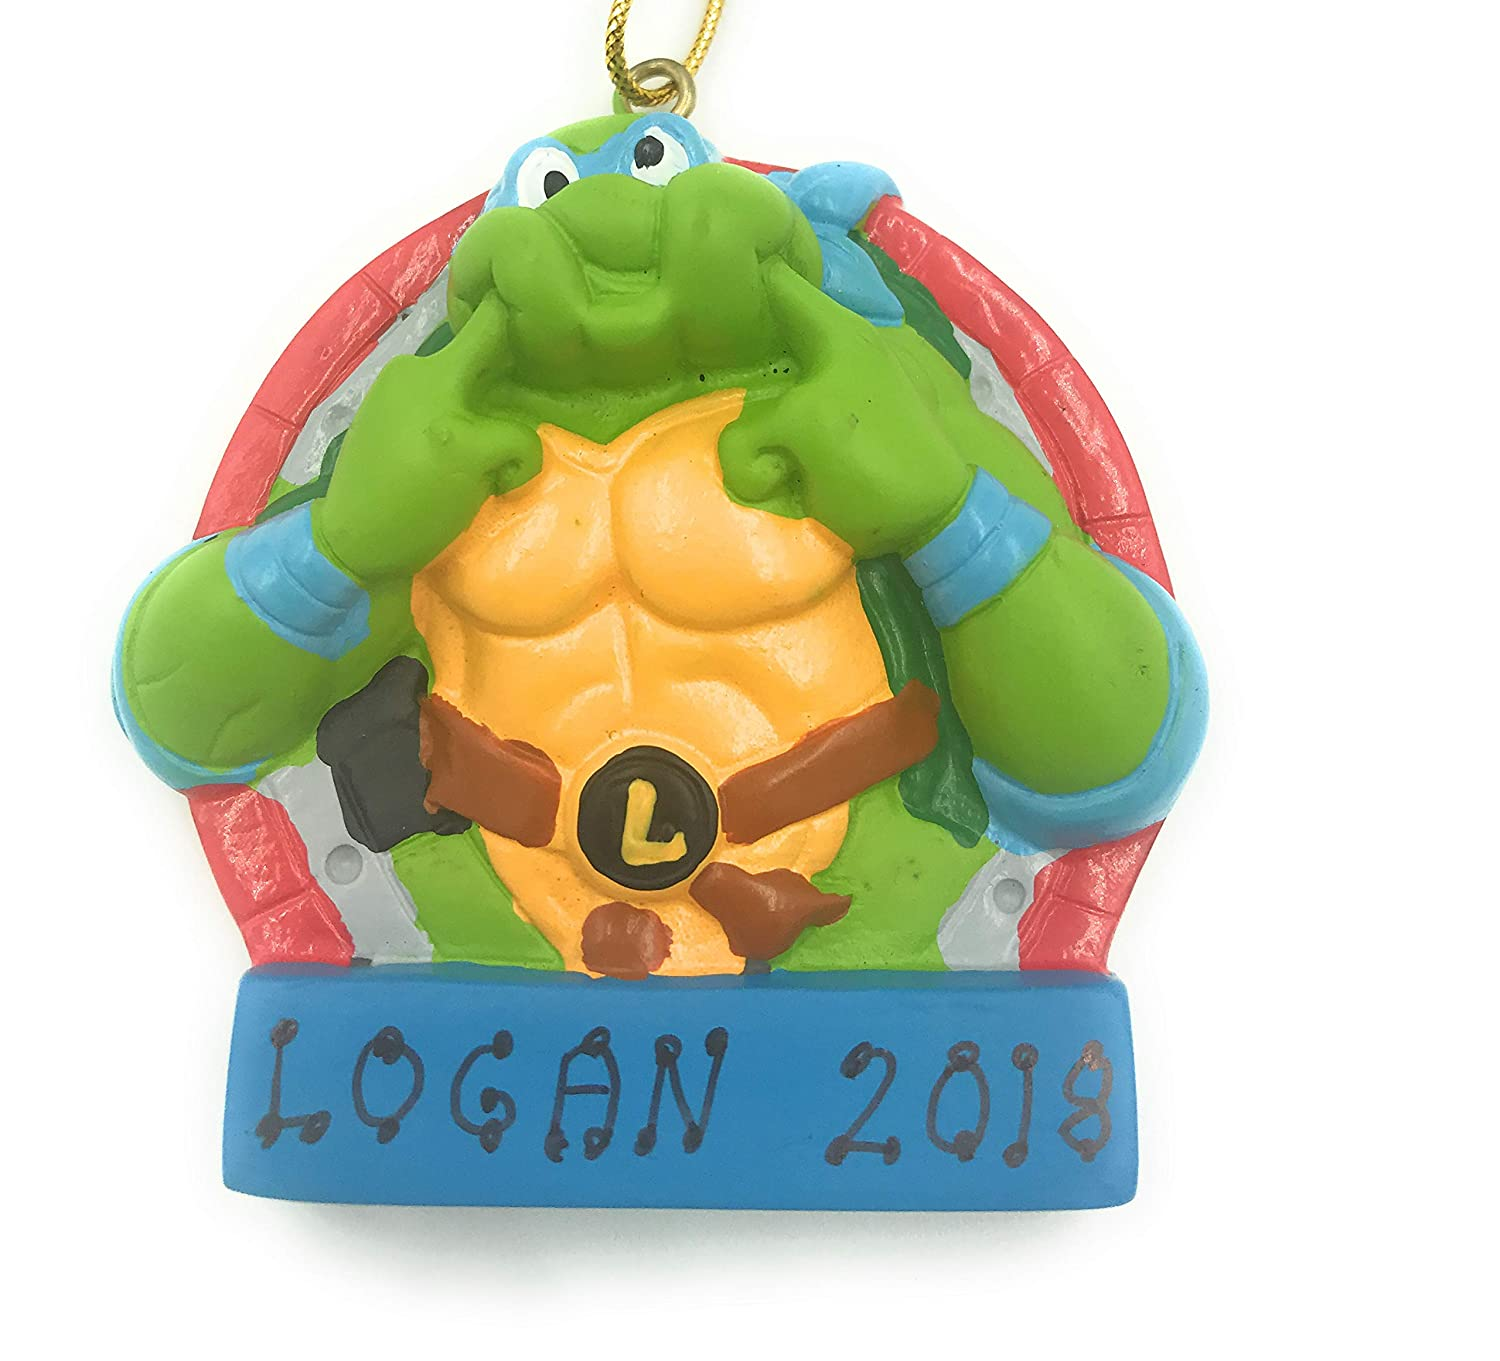 Personalized Ninja Turtle Ornament | www.topsimages.com